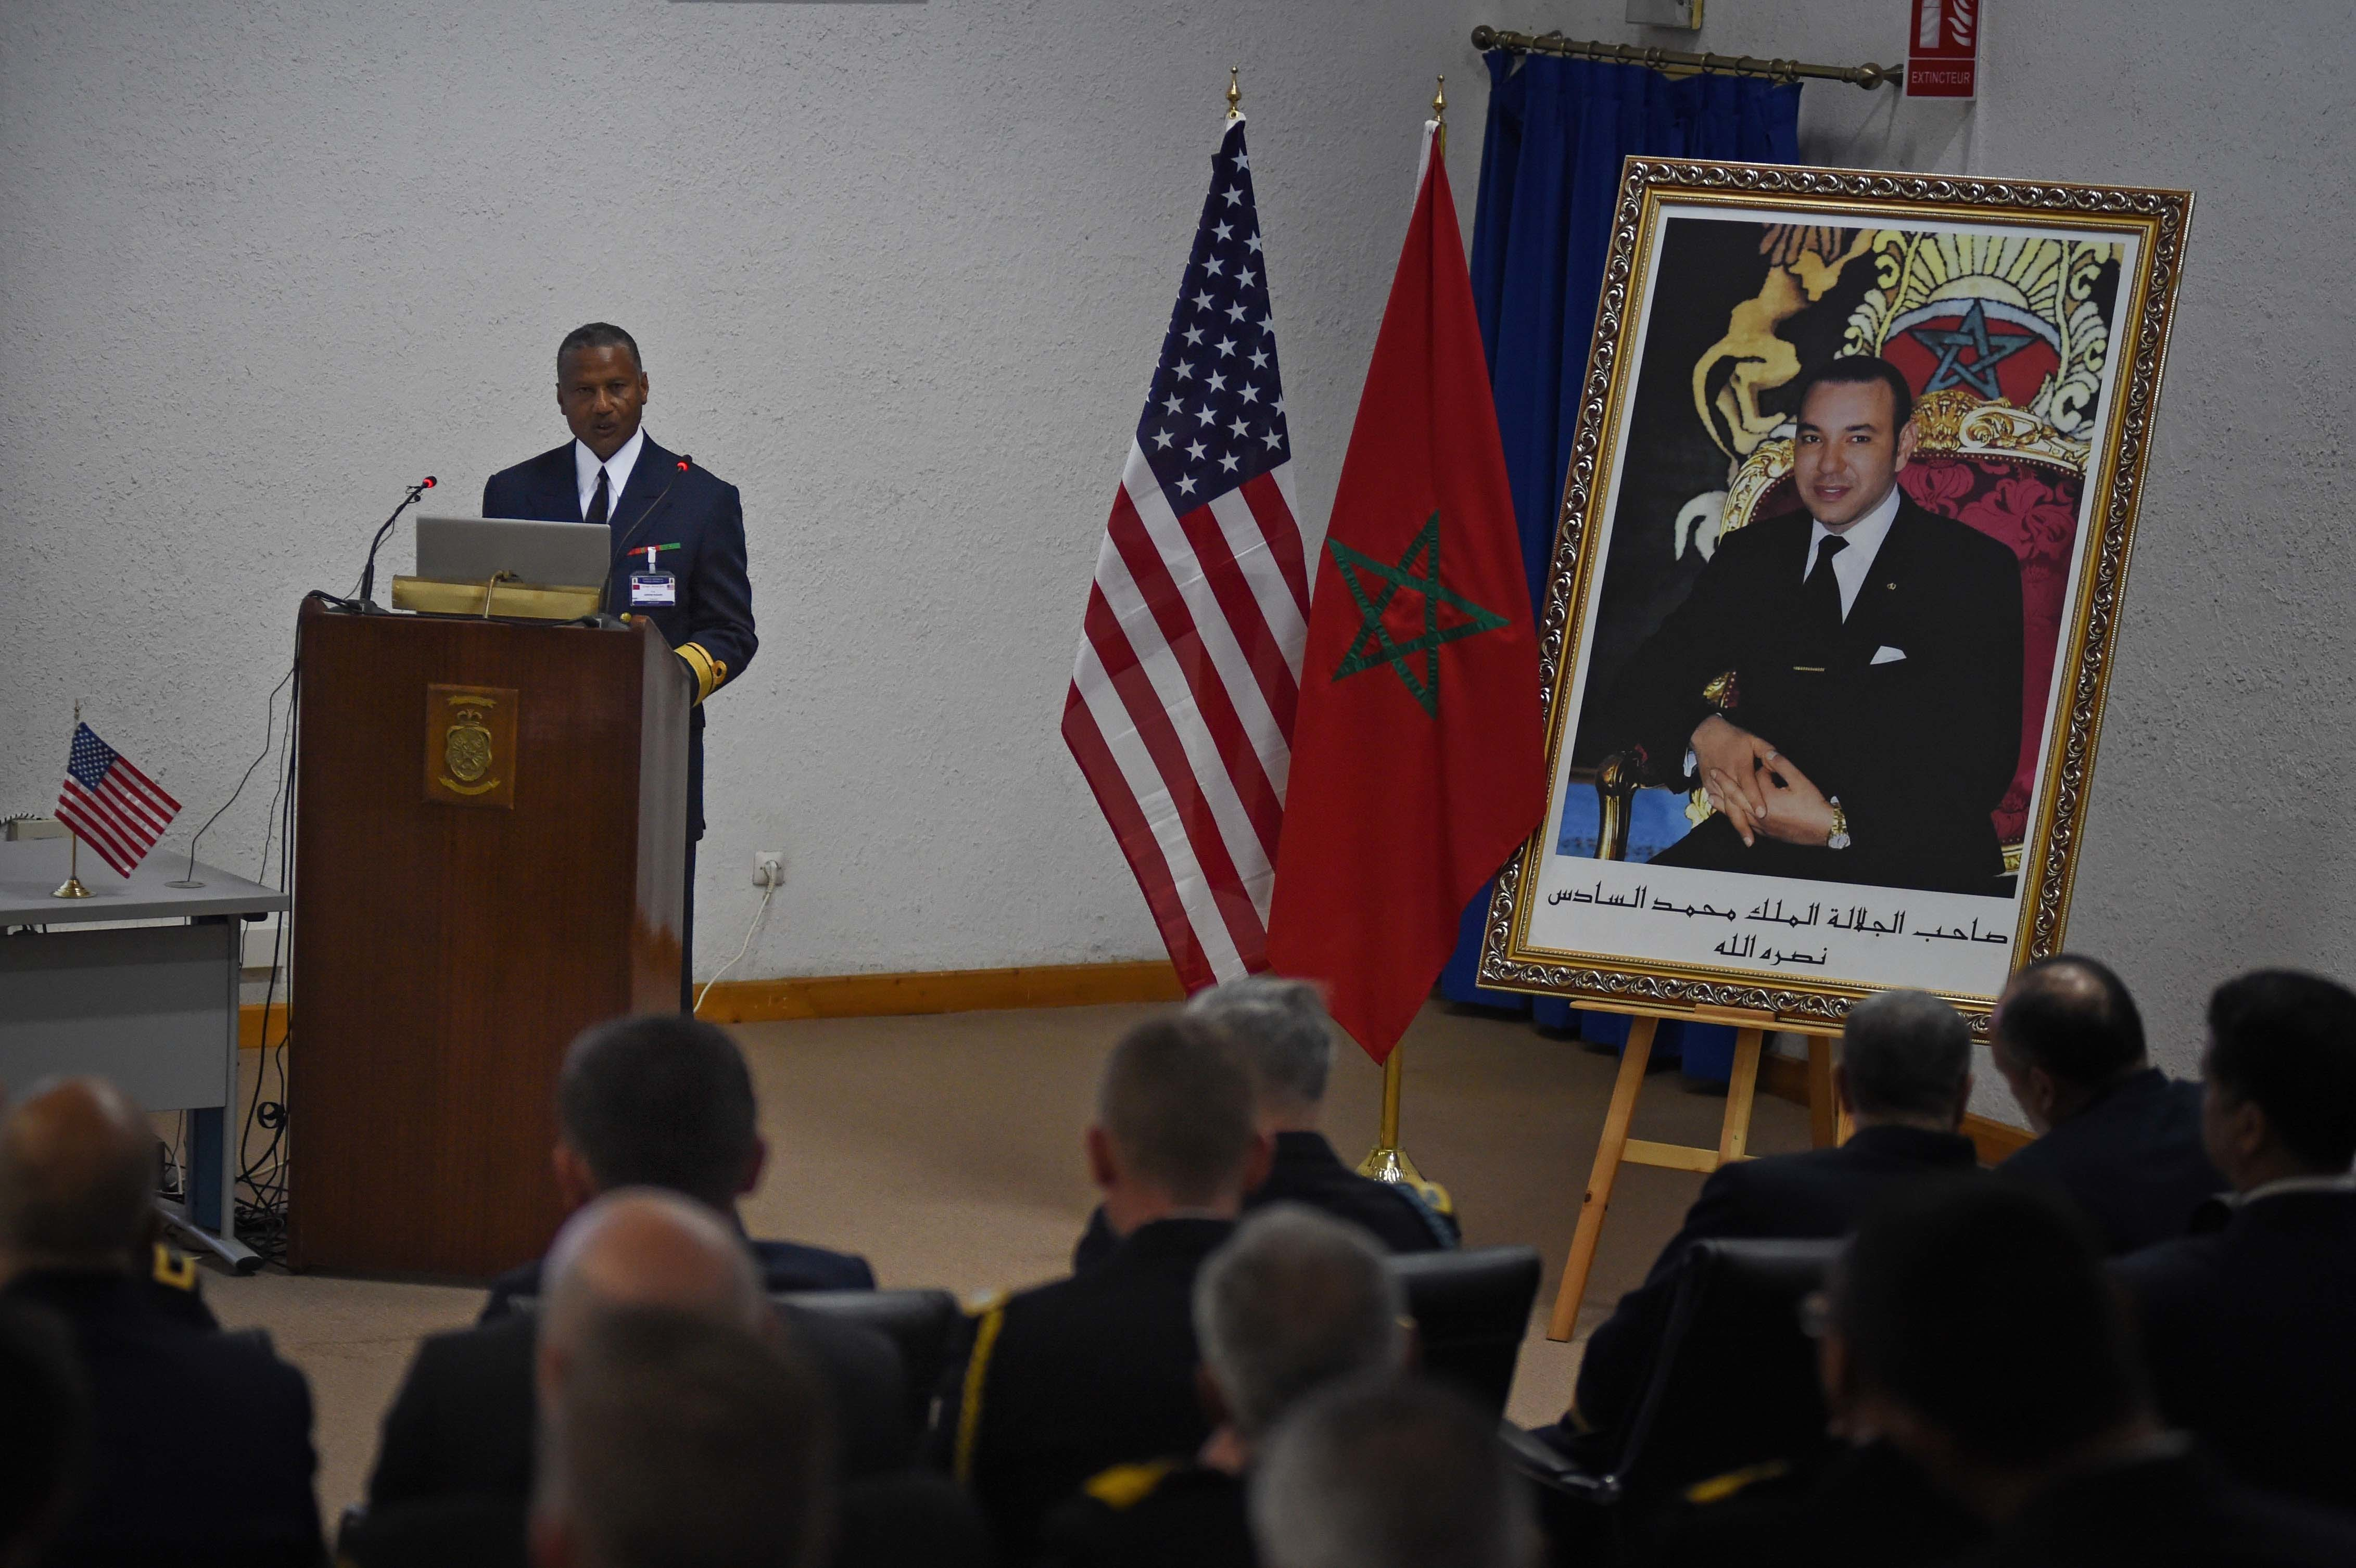 CASABLANCA, MOROCCO (March 29, 2019) Royal Moroccan Navy Deputy Chief of Operations Rear Adm. Abdenbi Bakadir gives remarks during the opening ceremony for exercise Phoenix Express 2019. Sponsored by U.S. Africa Command (AFRICOM) and facilitated by U.S. Naval Forces Europe-Africa, Phoenix Express is designed to improve regional cooperation, increase maritime domain awareness information sharing practices, and operational capabilities to enhance efforts to achieve safety and security in the Mediterranean Sea. (U.S. Navy Photo by Chief Mass Communication Specialist Arif Patani/Released)